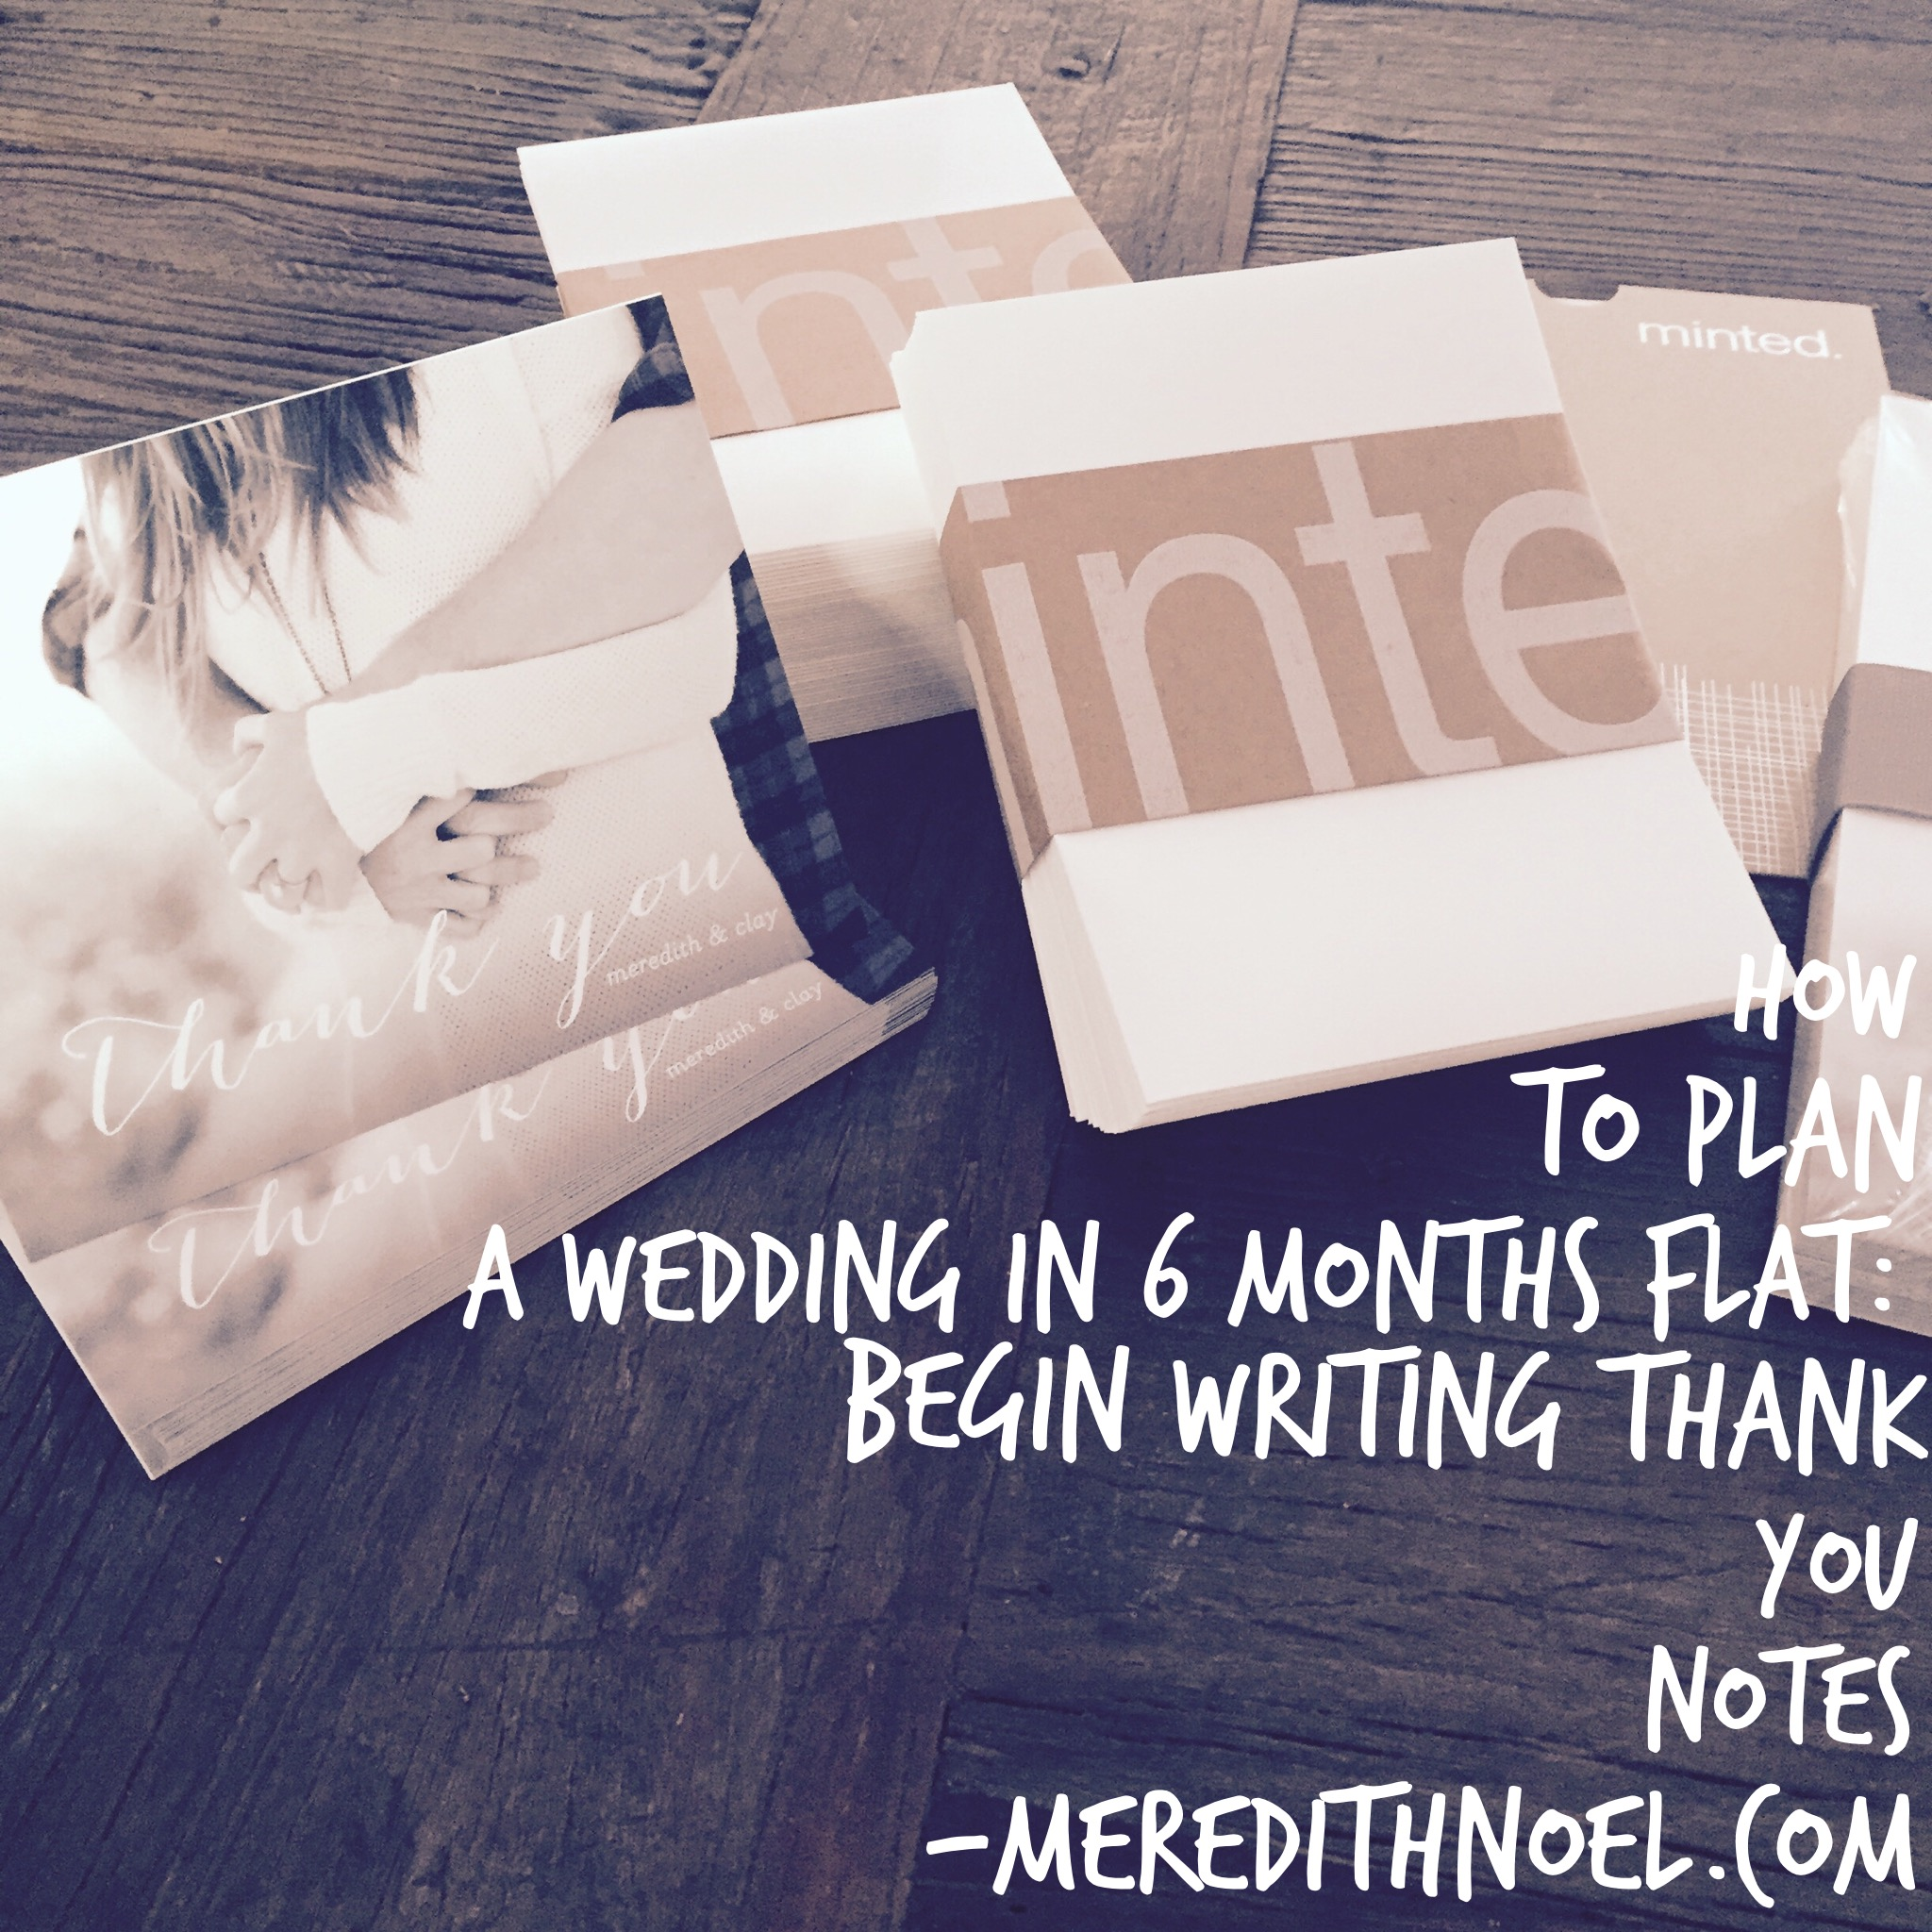 How To Plan A Wedding In 6 Months Flat: Week 18